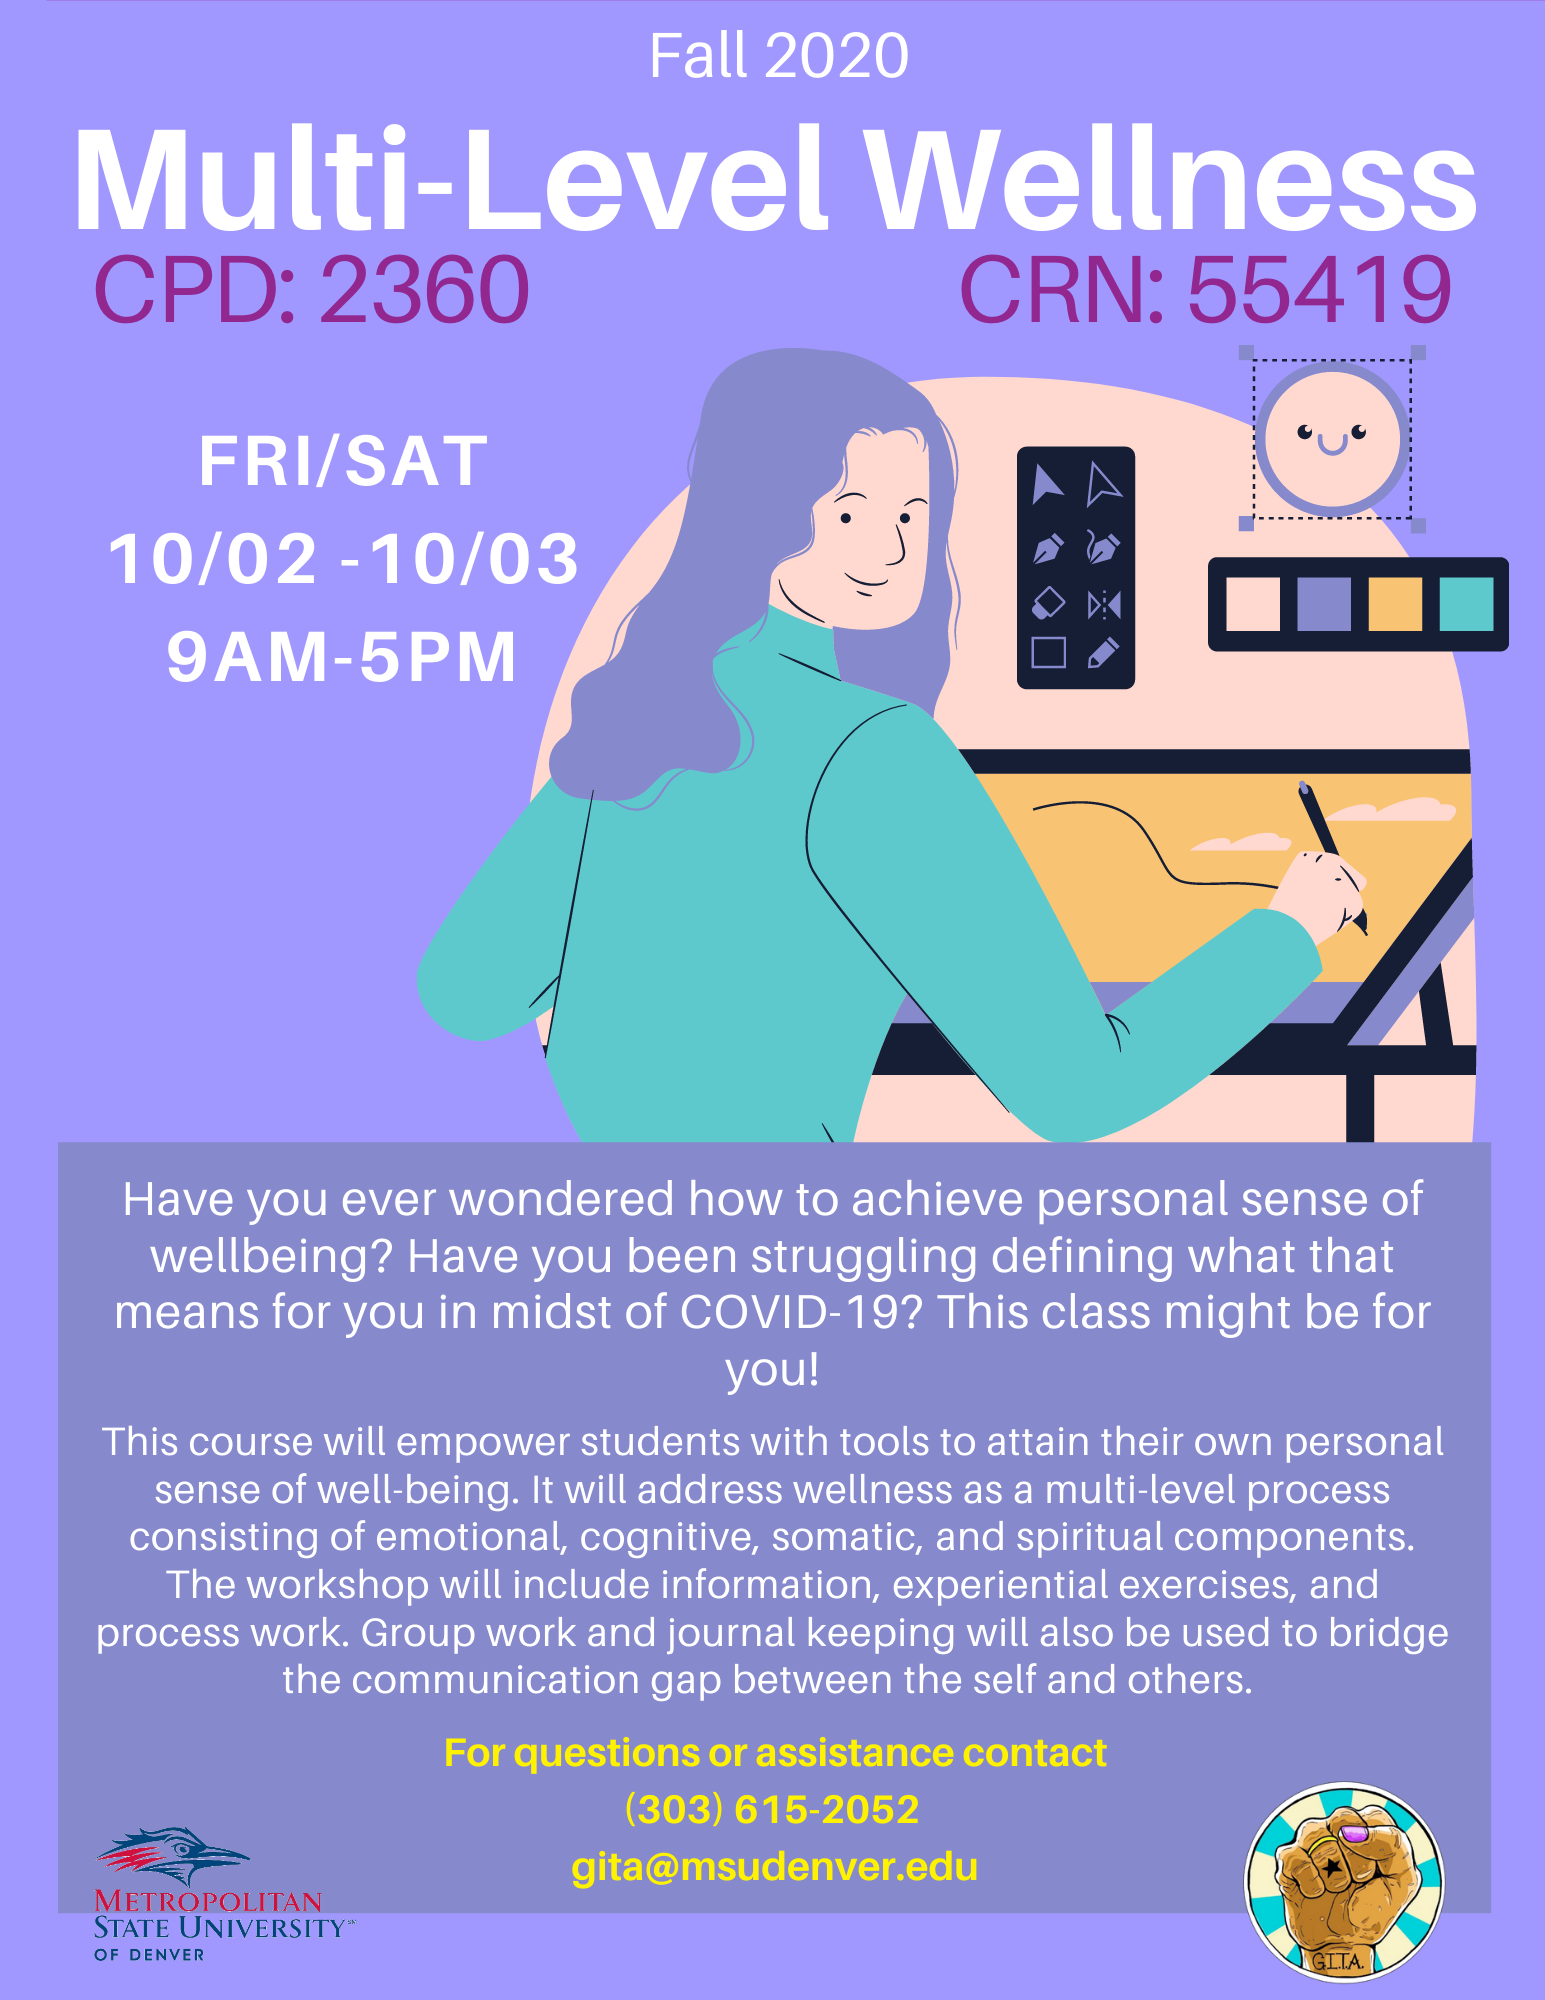 Flyer for CPD 2360 Multi-Level Wellness Fall 2020 CRN: 55419